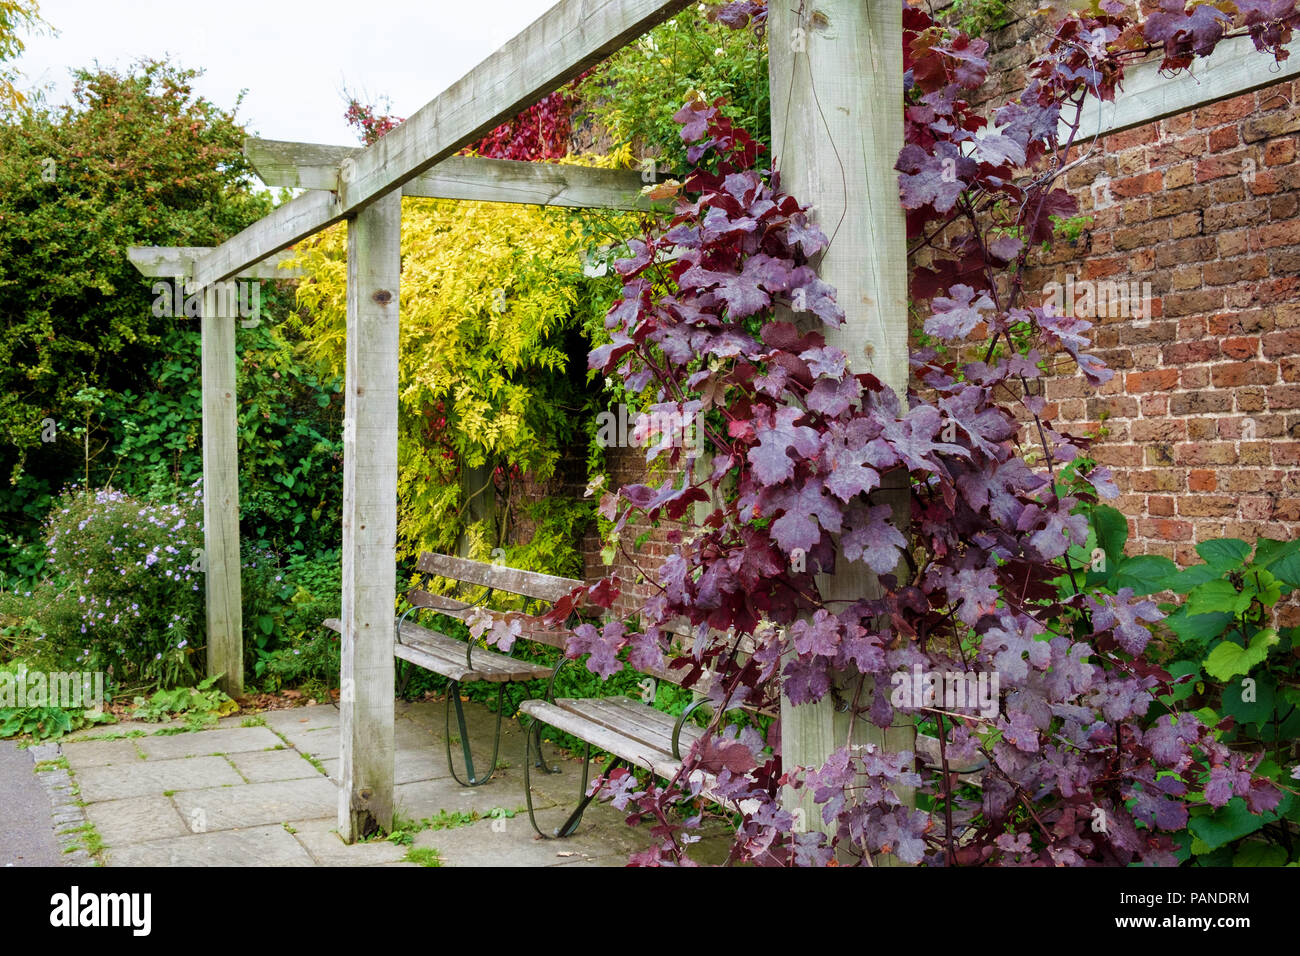 Two wooden benches under a pergola at Brockwell Park, Herne Hill, South London, England in autumn, with brick wall behind, red vines and yellow leaves - Stock Image